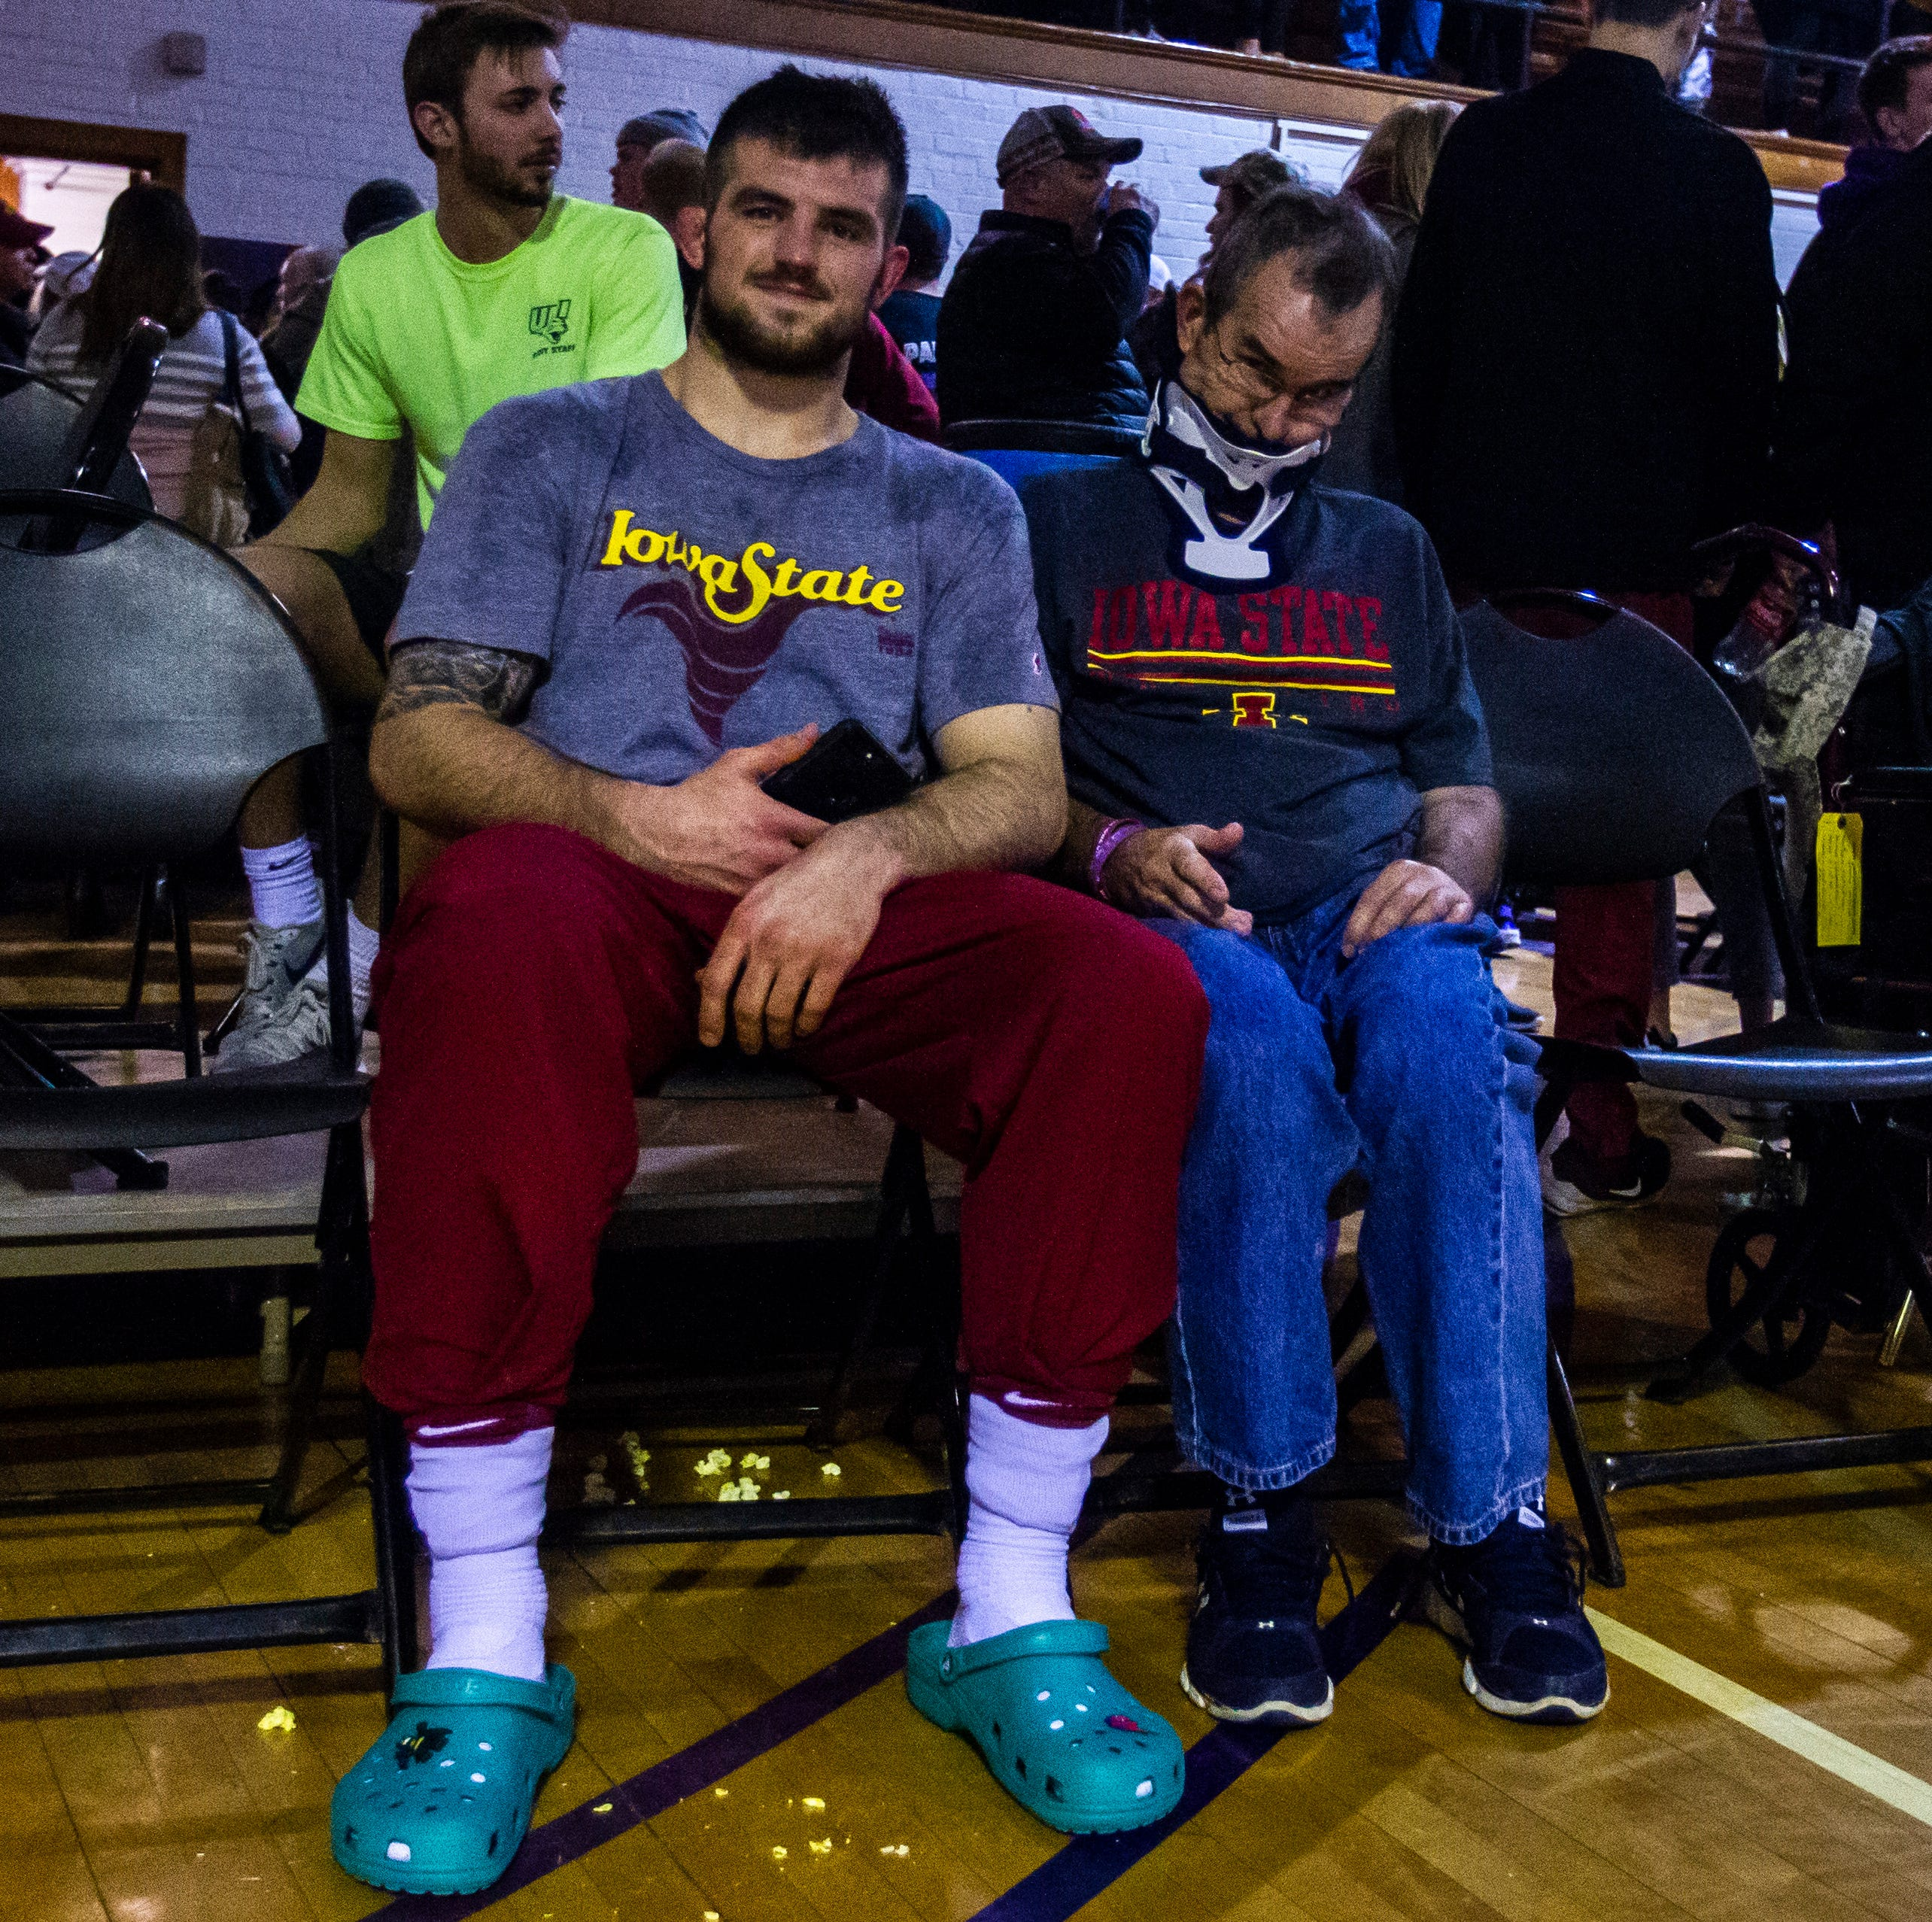 WATCH: Iowa State wrestler Willie Miklus pens an emotional letter to his late father